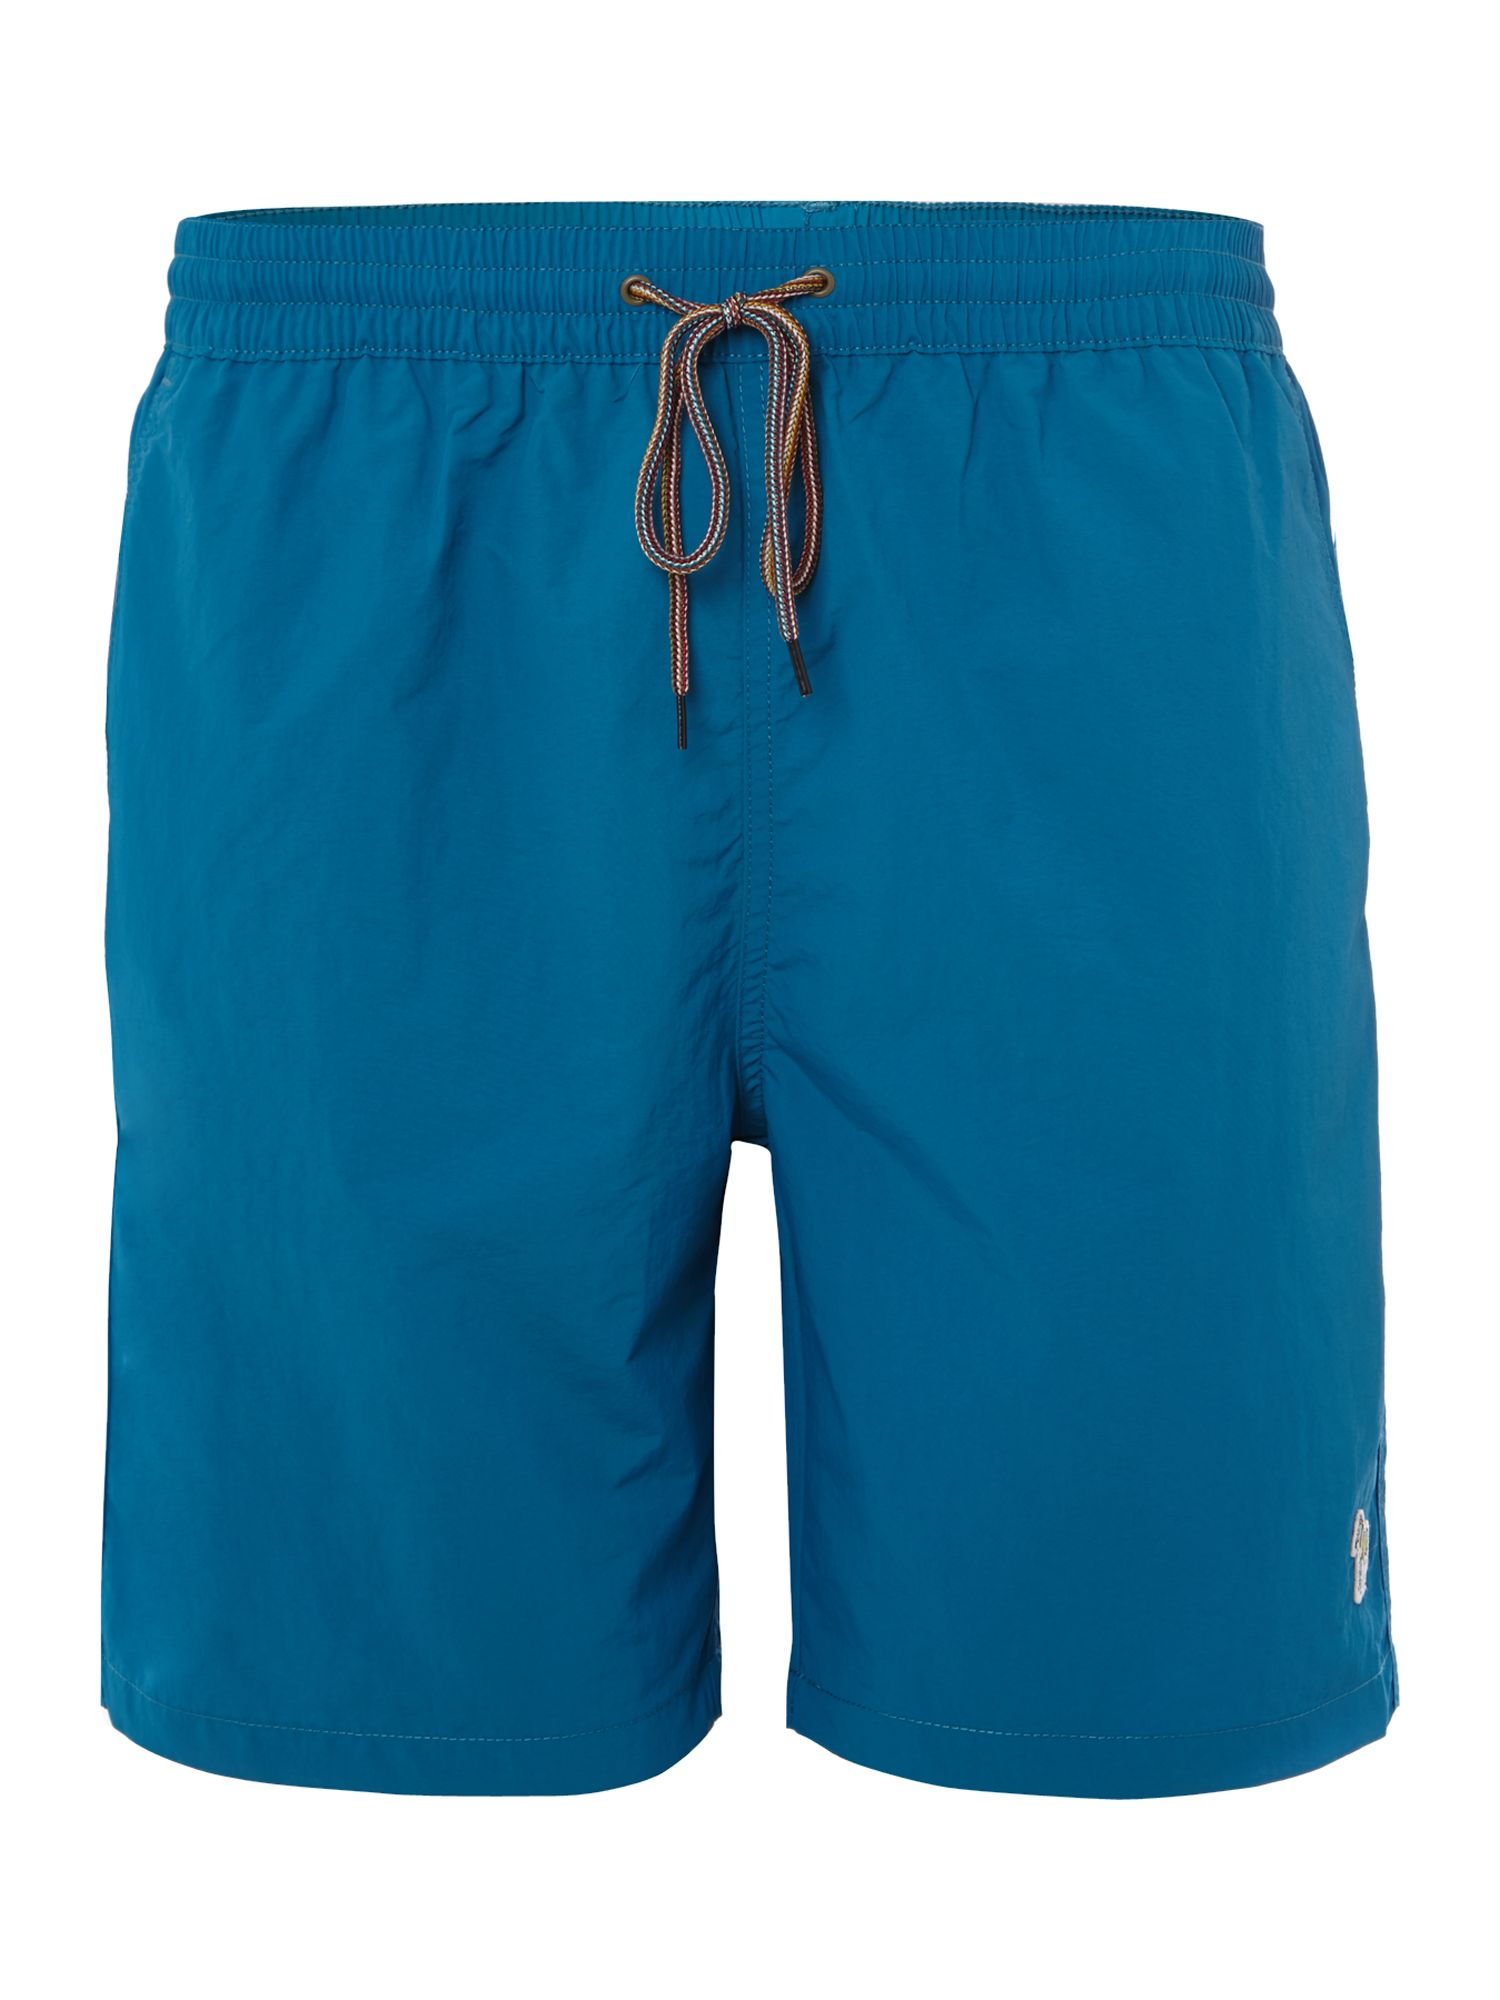 Solid classic long swim short